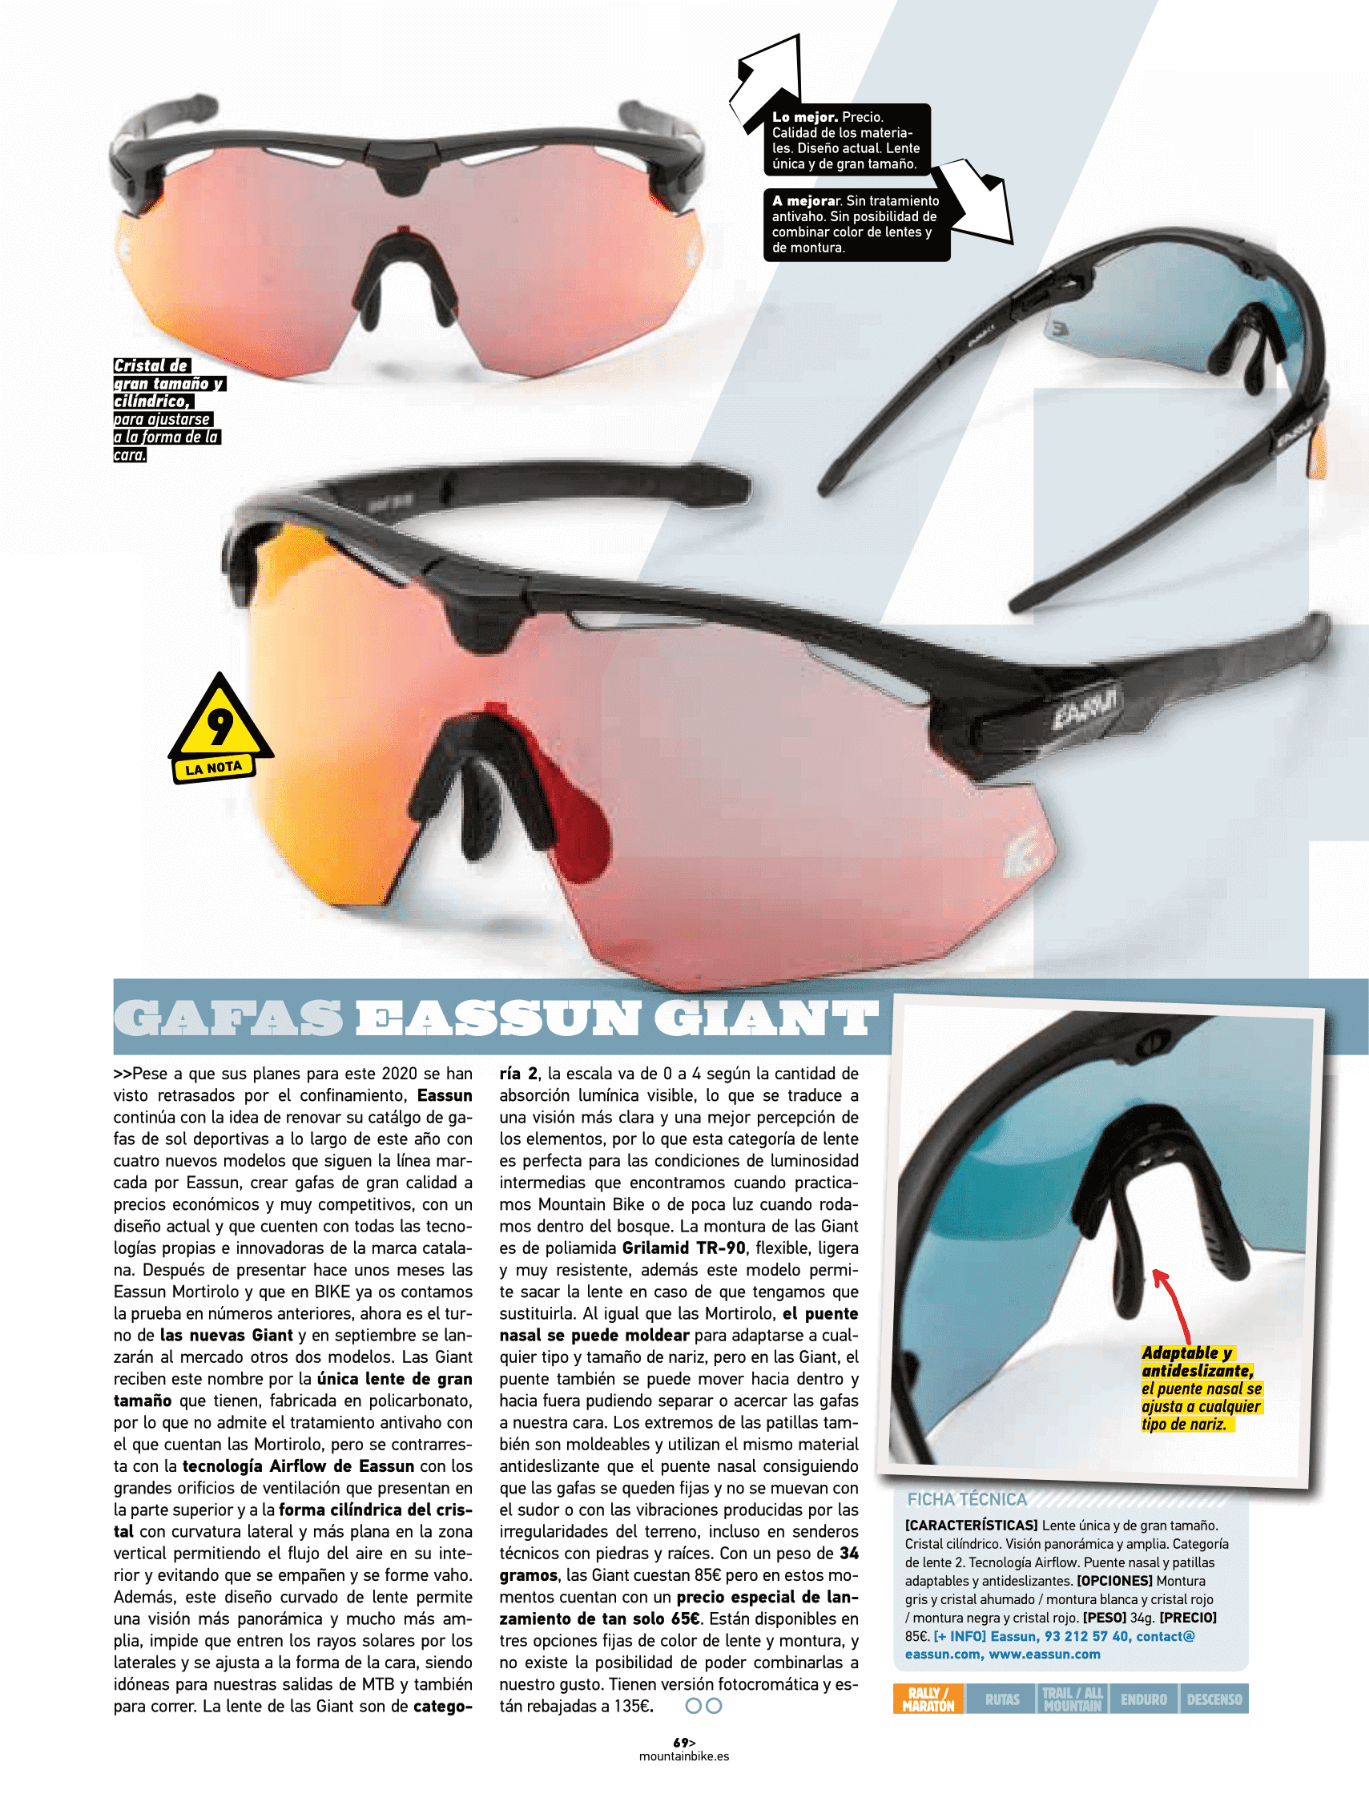 Revista Bike Realiza Test a Gafas Giant EASSUN